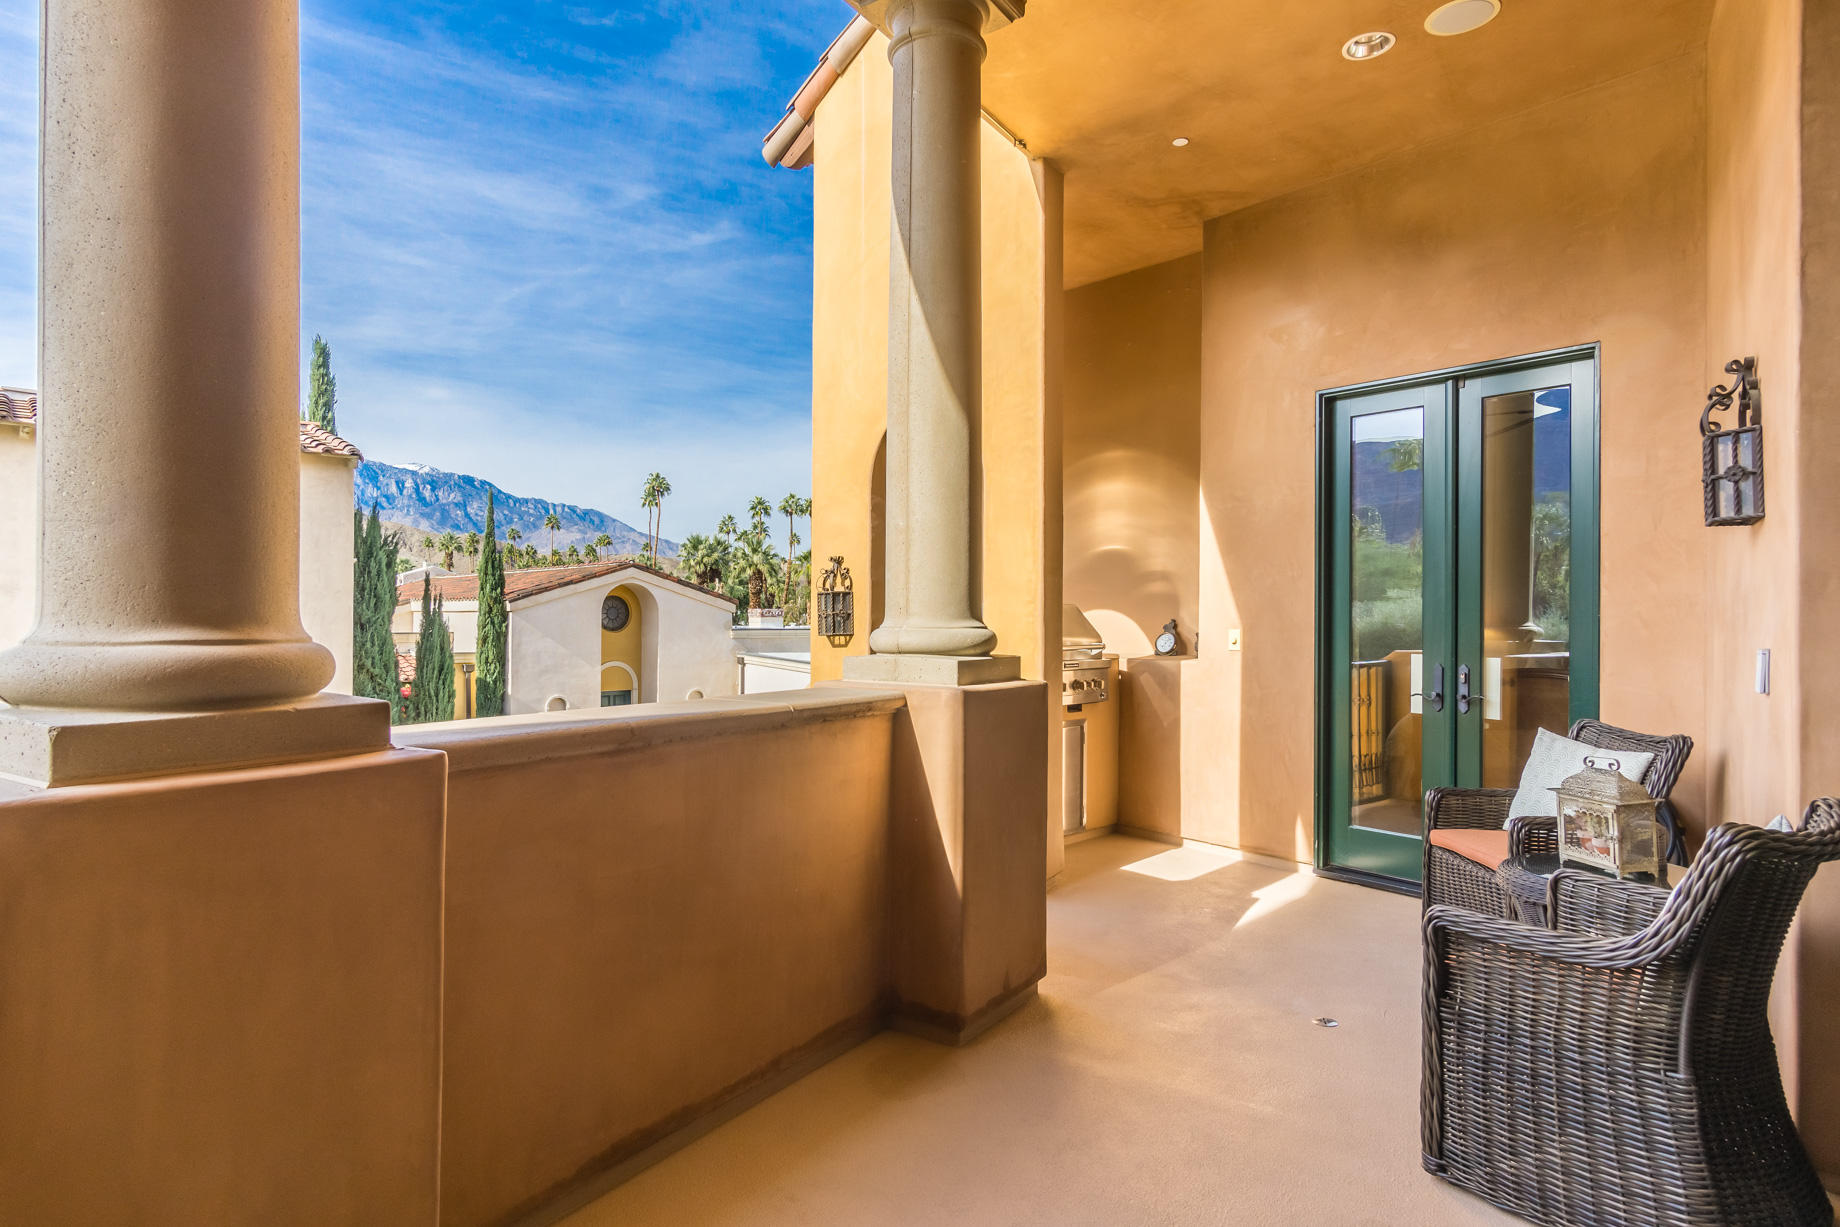 219 Viale Veneto, Rancho Mirage, California 92270, 2 Bedrooms Bedrooms, ,3 BathroomsBathrooms,Residential,For Sale,219 Viale Veneto,219035227